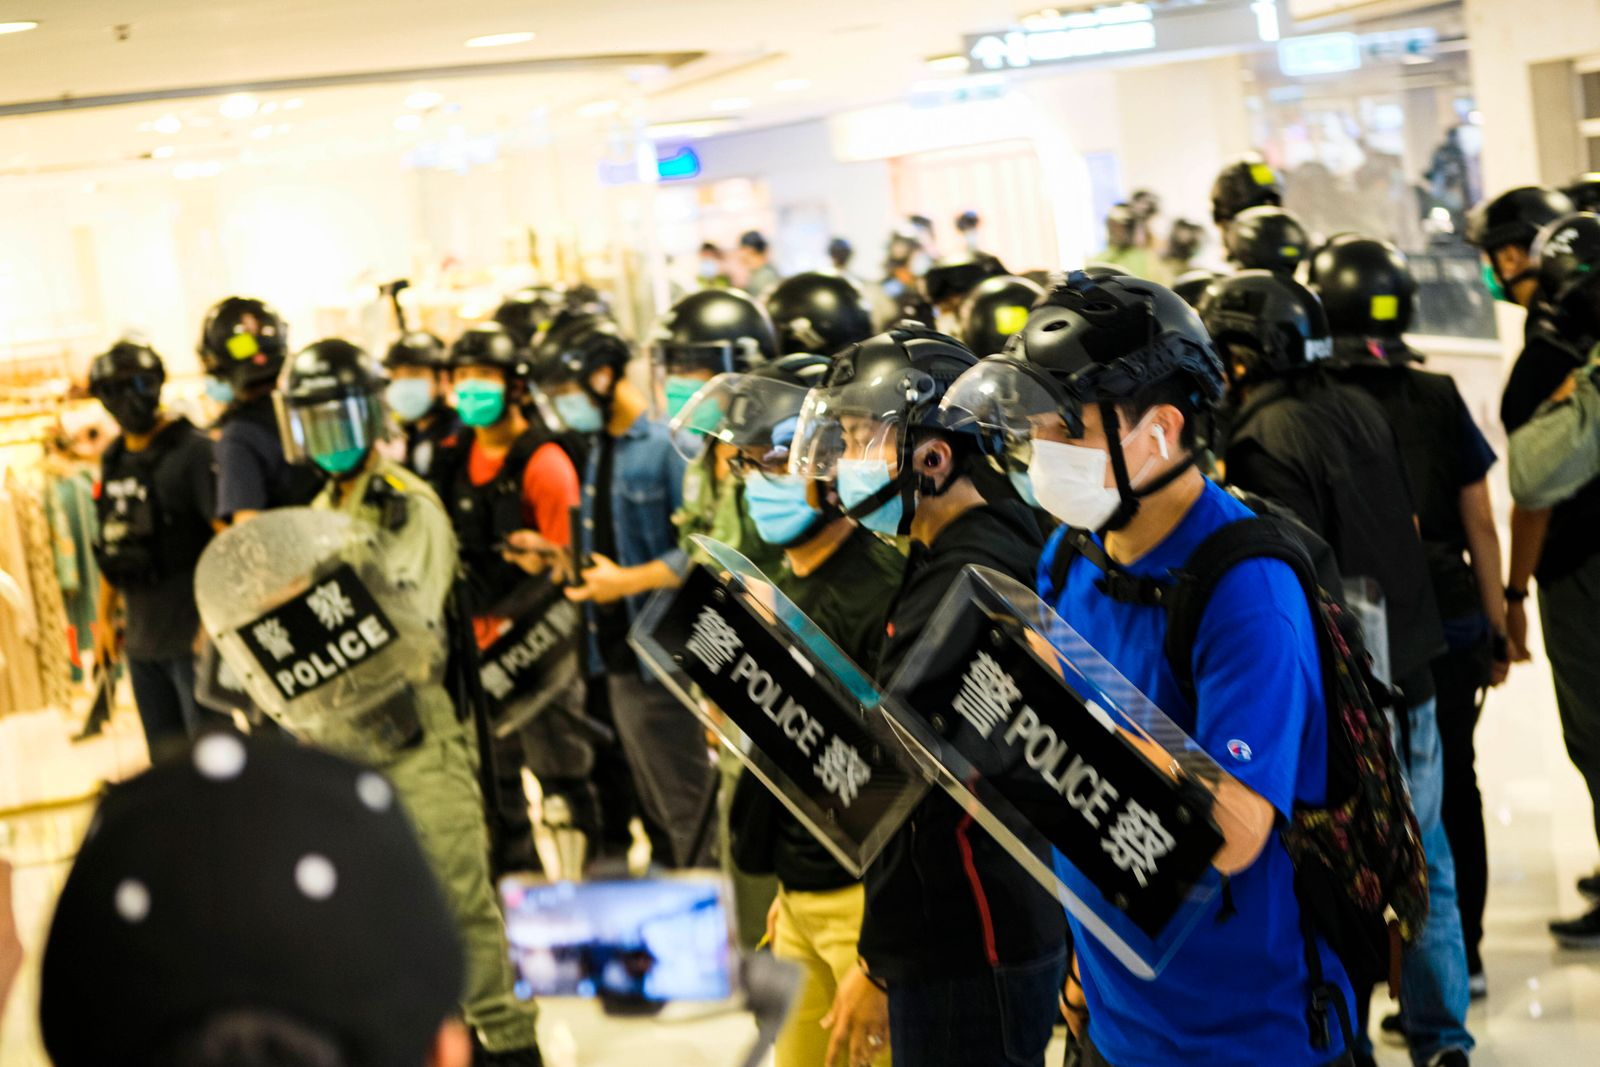 May 10, 2020, Hong Kong, China: Police stand on guard during a protest in a shopping mall on Mother s Day..Hong Kong po